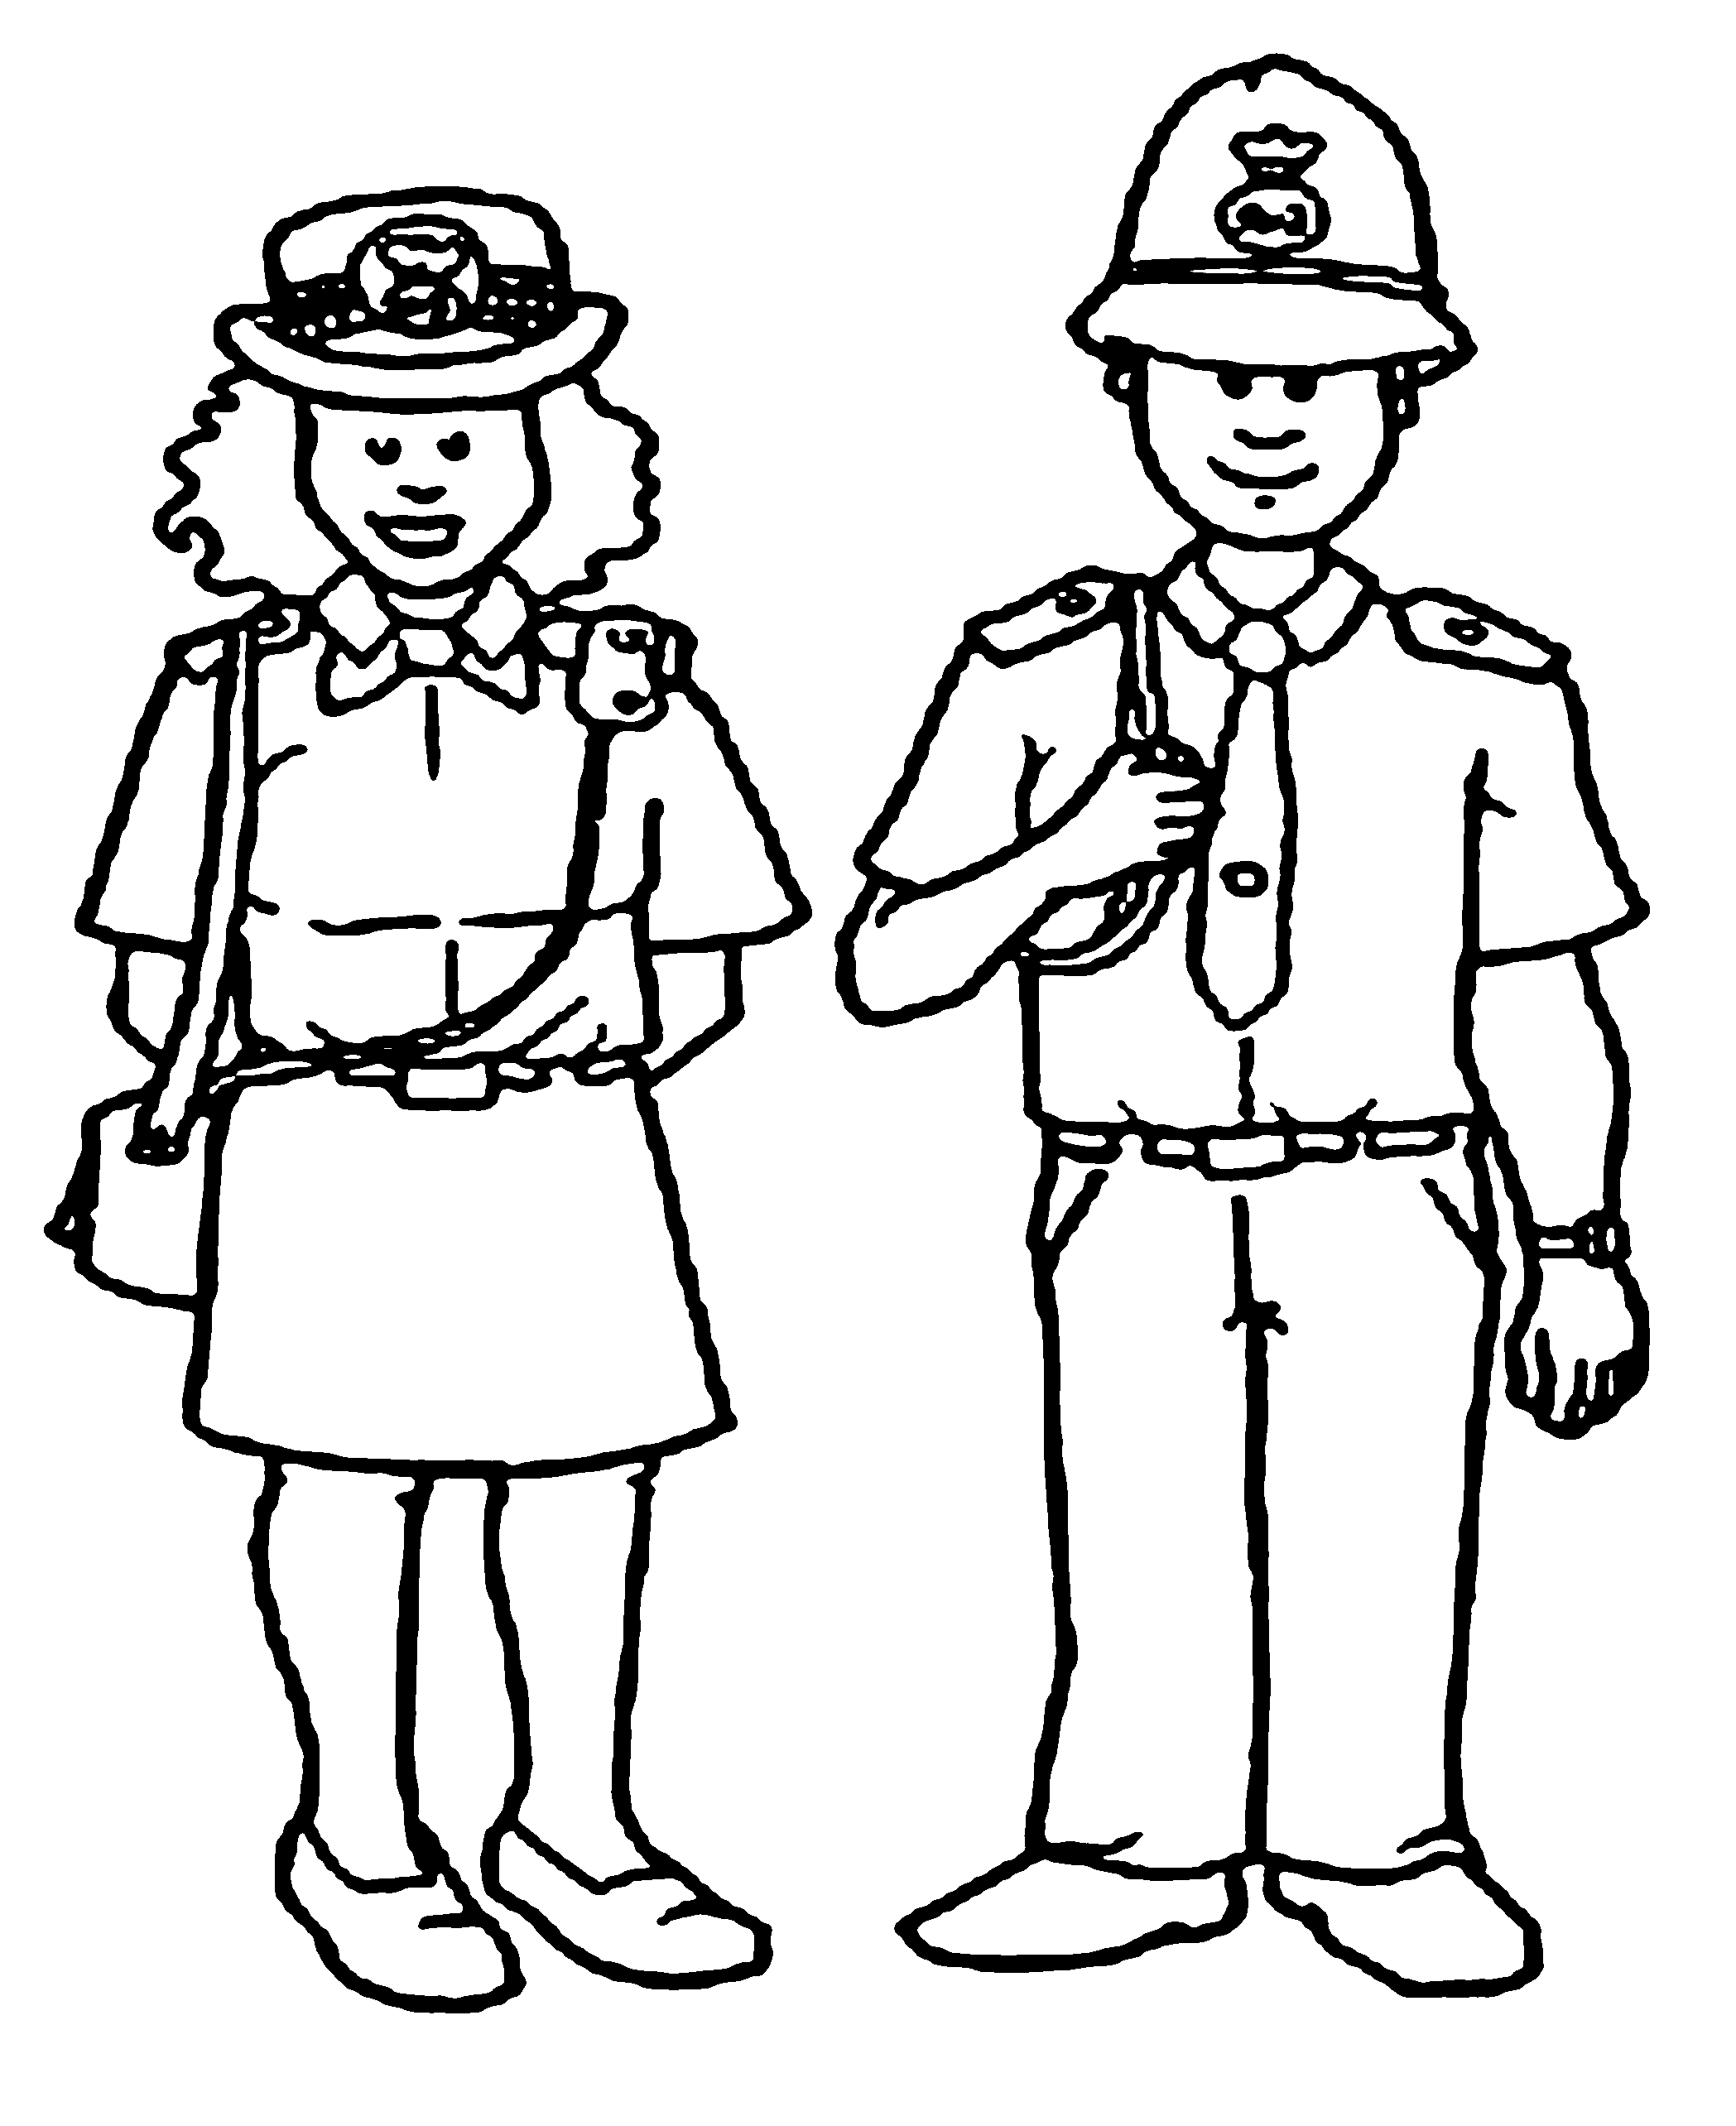 Police Women And Policeman Coloring Pages Coloring Pages For Kids Teddy Bear Coloring Pages Fathers Day Coloring Page